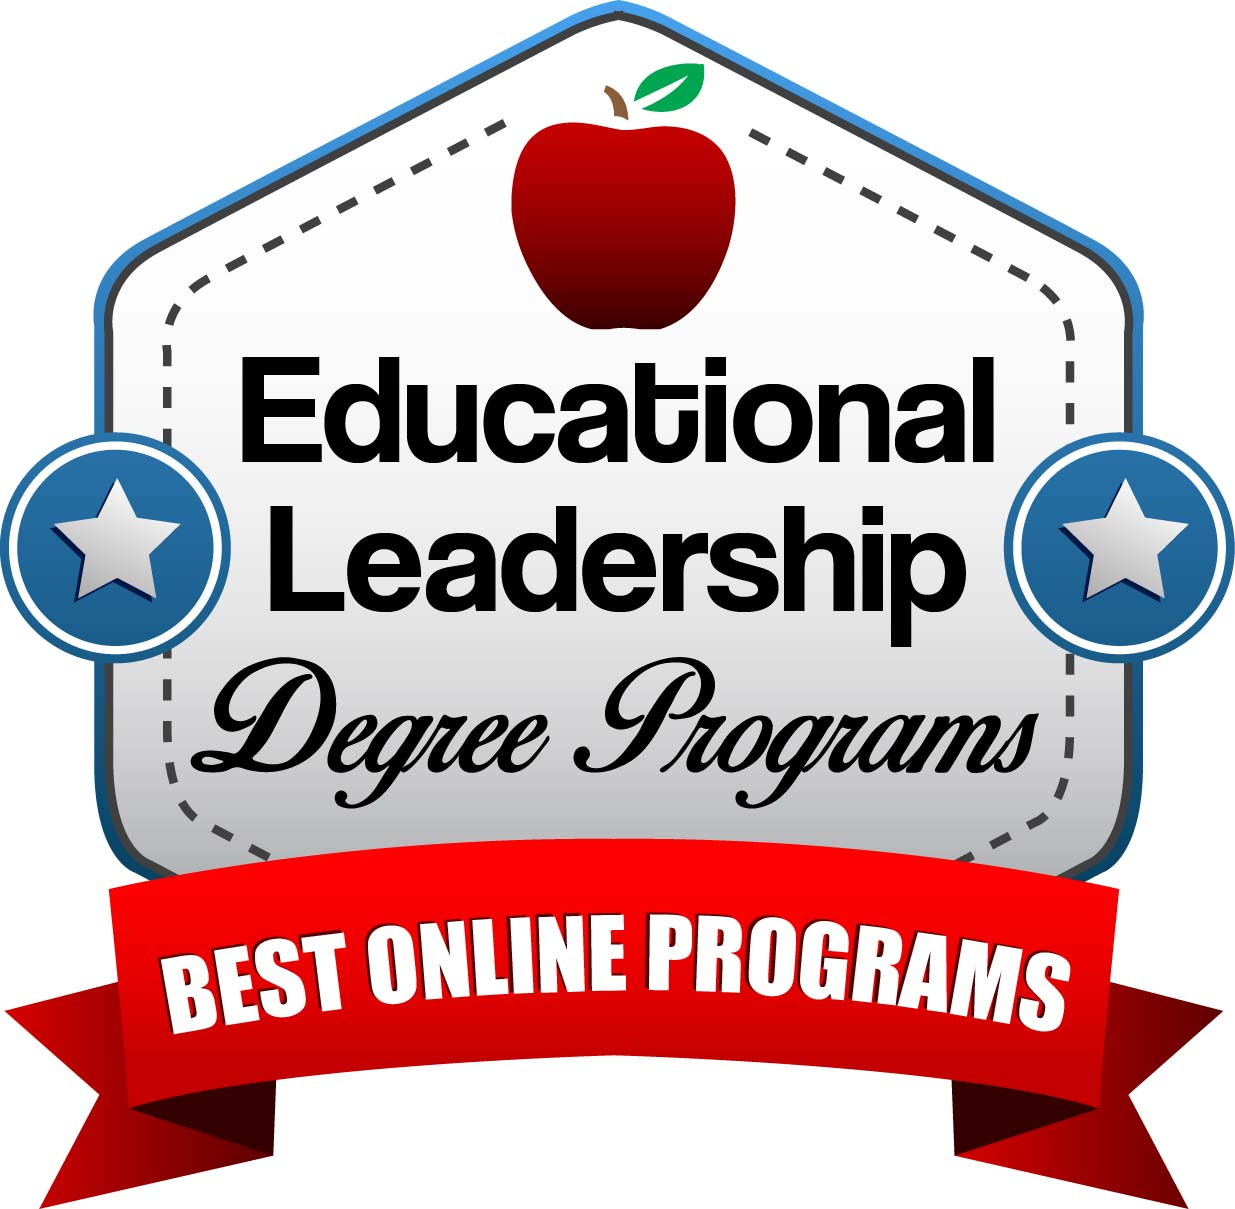 Educational-Leadership-Degree-Programs-Best-Online-Programs.jpg